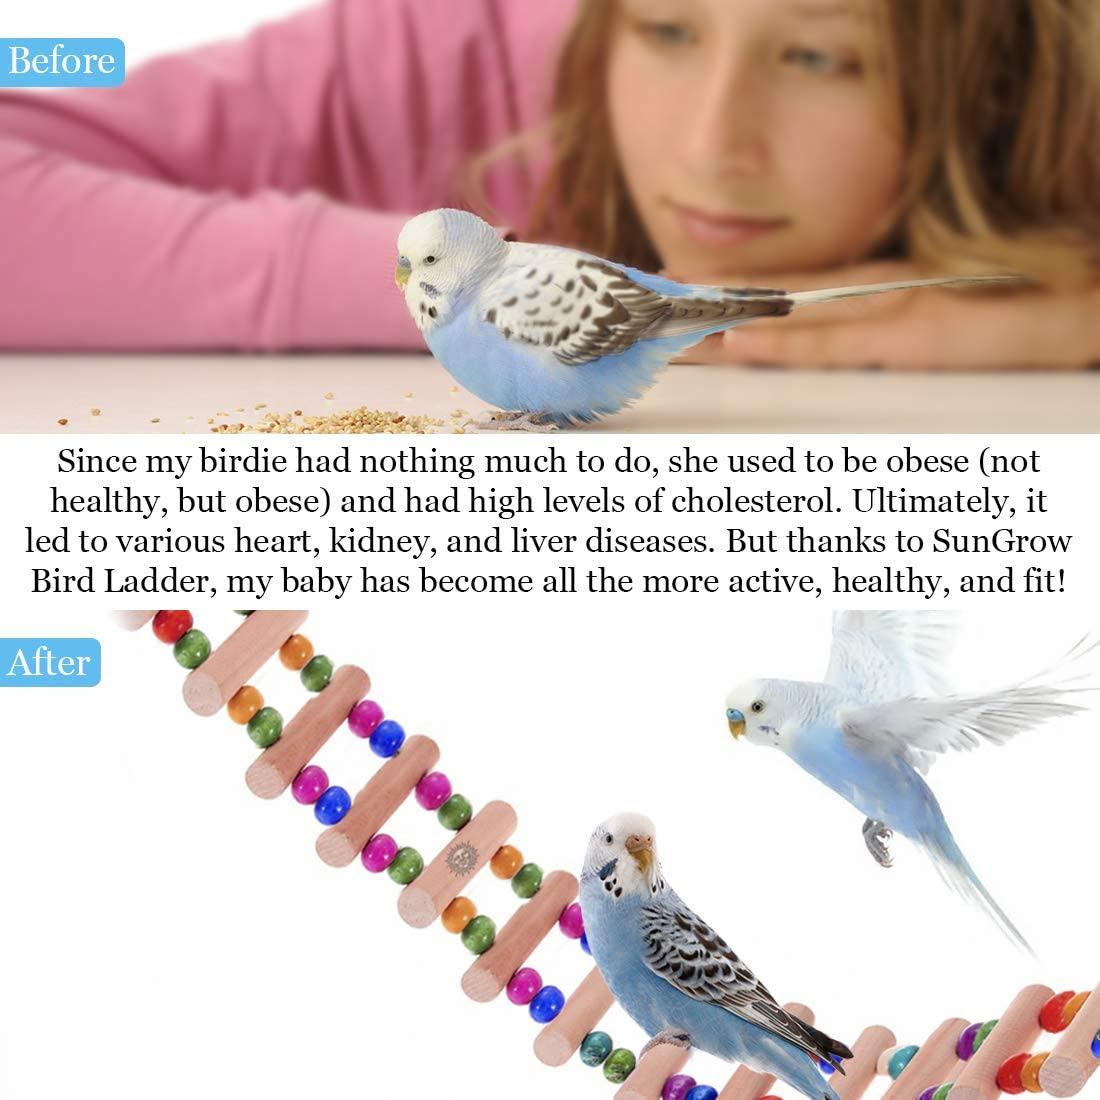 SunGrow Bird Ladder Bridge, 20 Inches Long, Helps Birds with Balance, Made with Raw Wood and Edible Dye, Easy Installation, Bright, Durable and Flexible, Suitable for Small to Medium Birds, 1 Piece : Pet Supplies